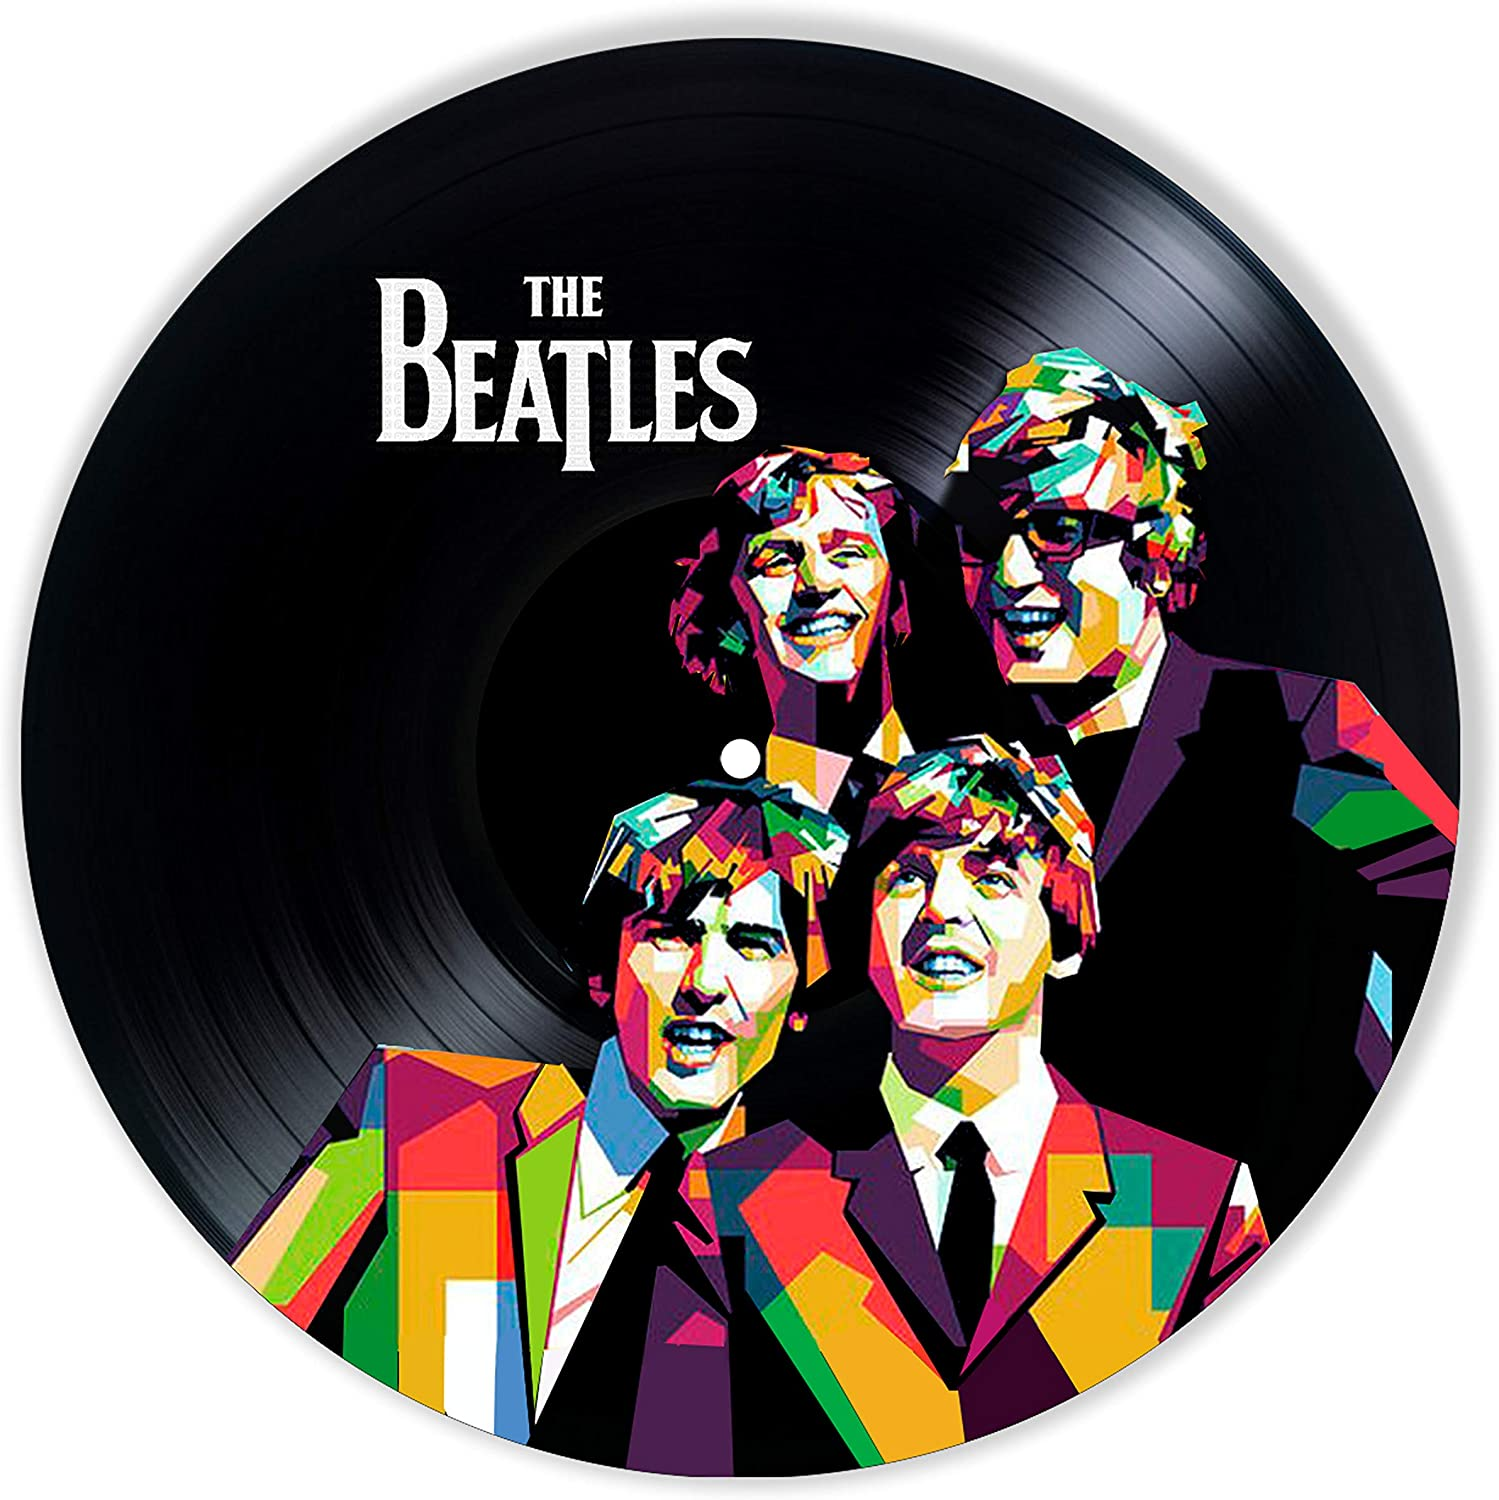 Beatles Vinyl Decor, Wall Decor Painted Beatles, Original Gifts for Music Lovers,The Best Gift for Souvenir, Unique Wall Art Home Decor